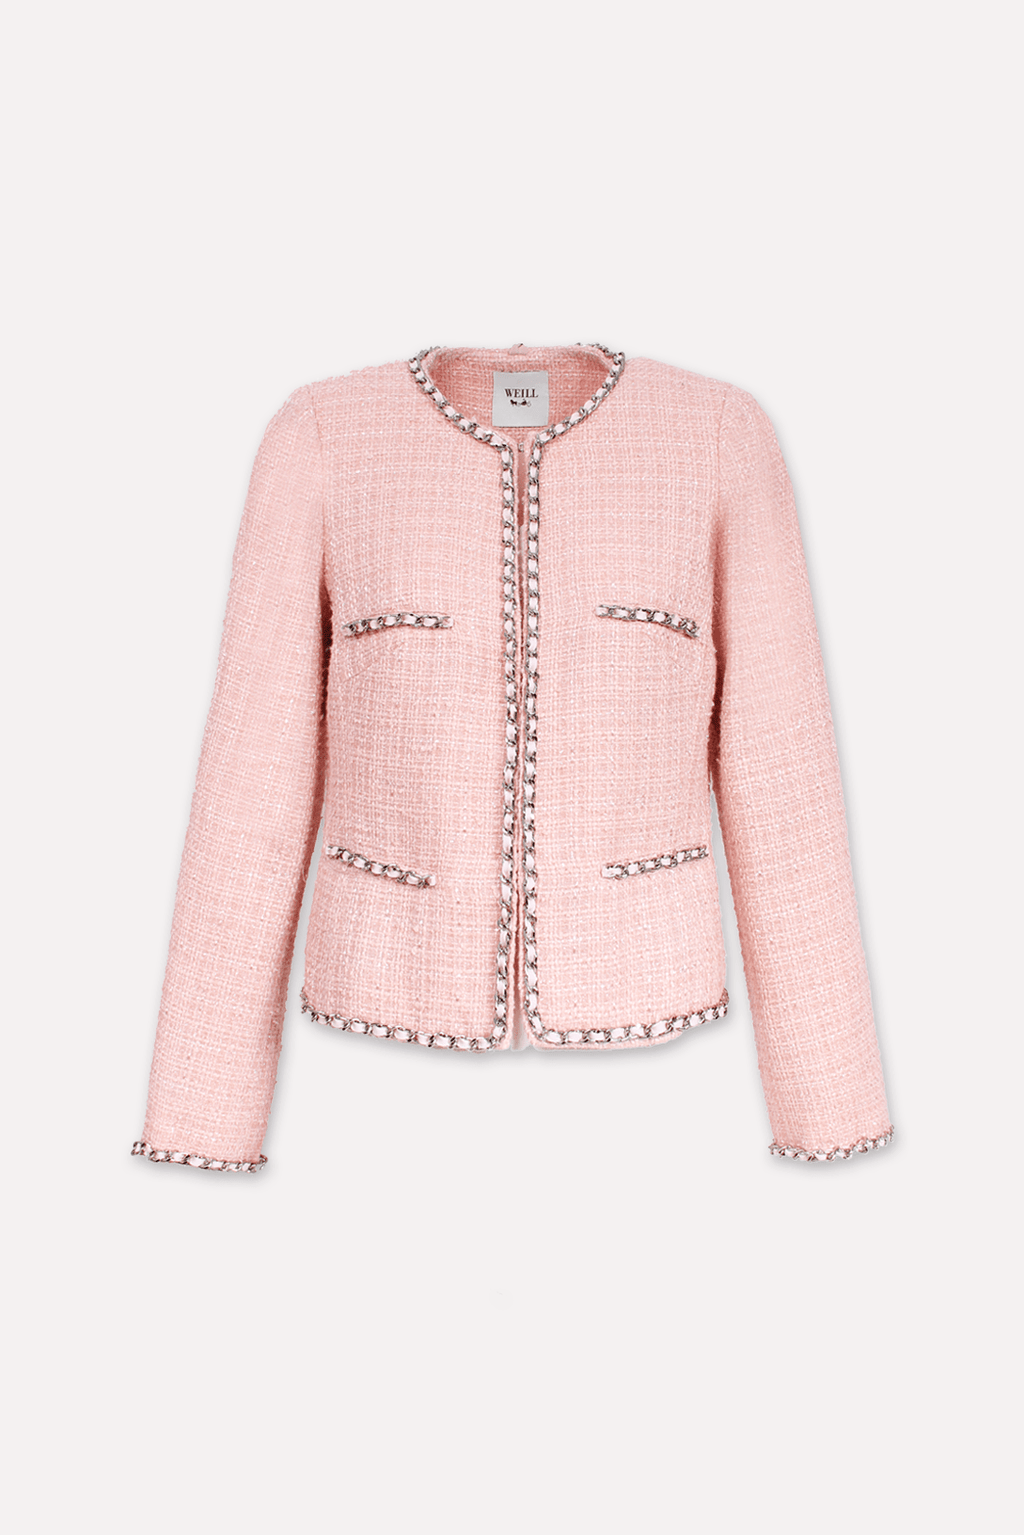 Weill Coats and Jackets Weill Mariata Jacket  in Soft Pink Tweed and Chain Edge 131028 izzi-of-baslow